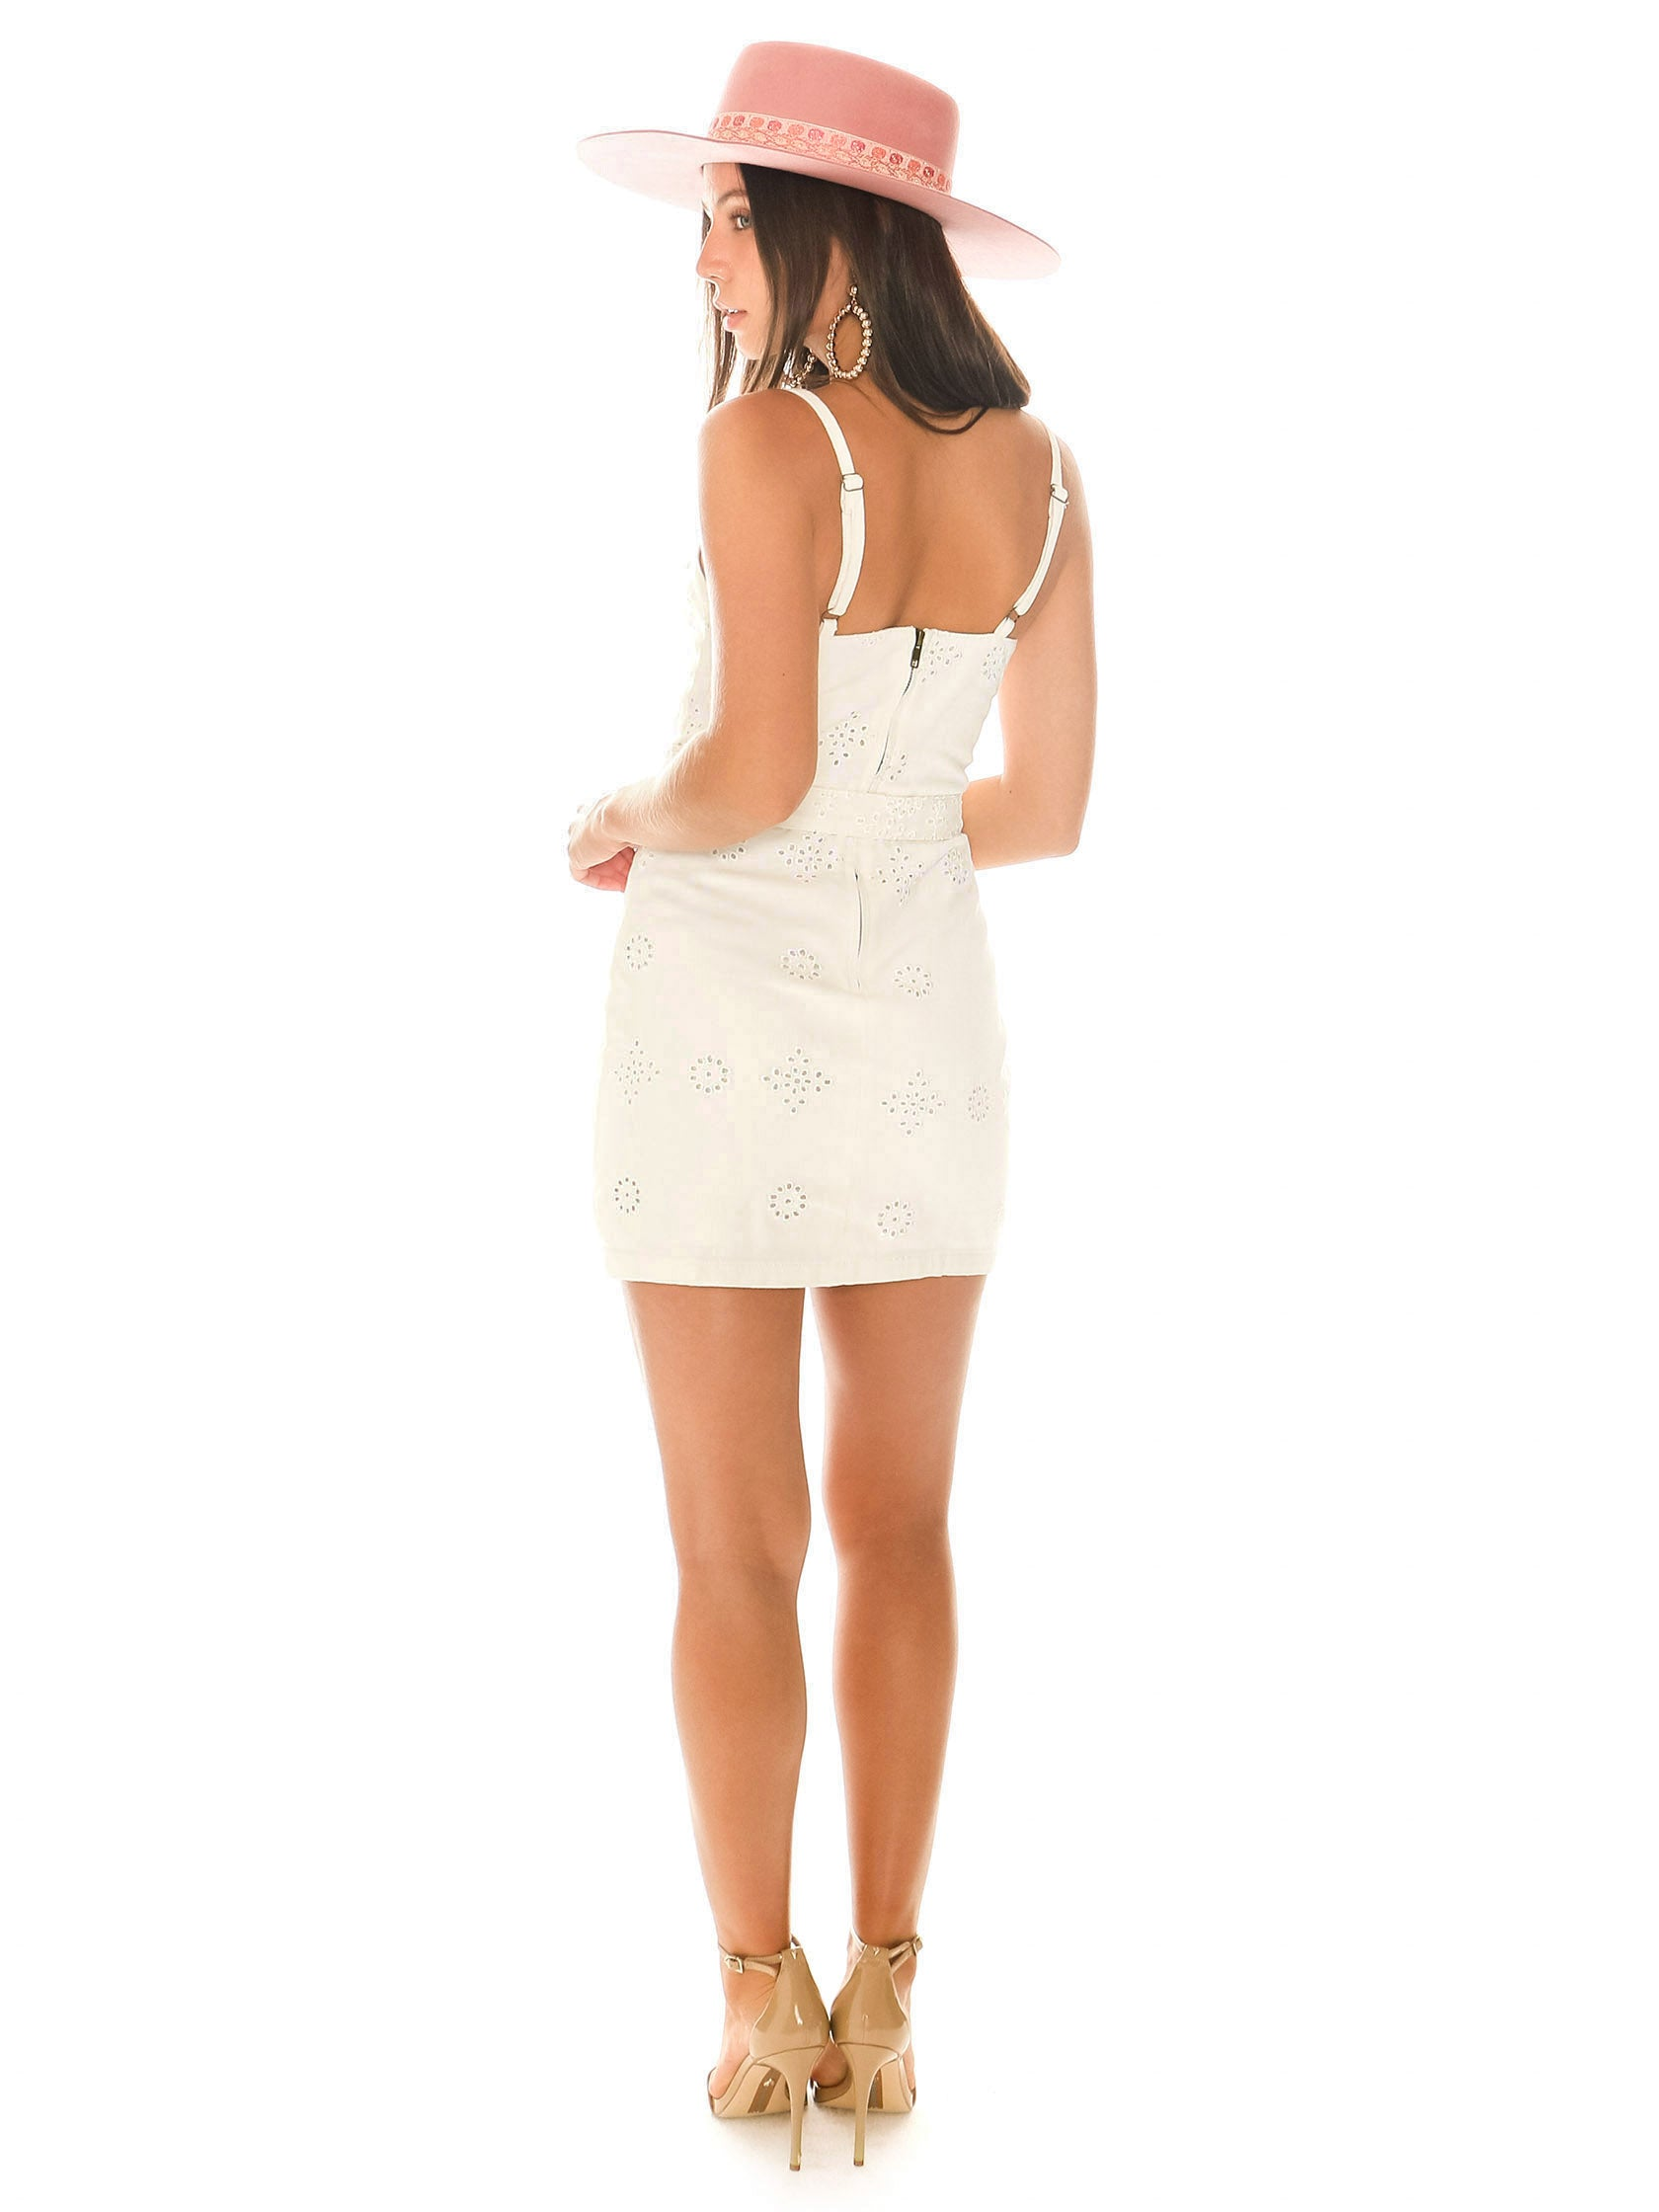 Women wearing a dress rental from MINKPINK called To The Coast Broidery Mini Dress